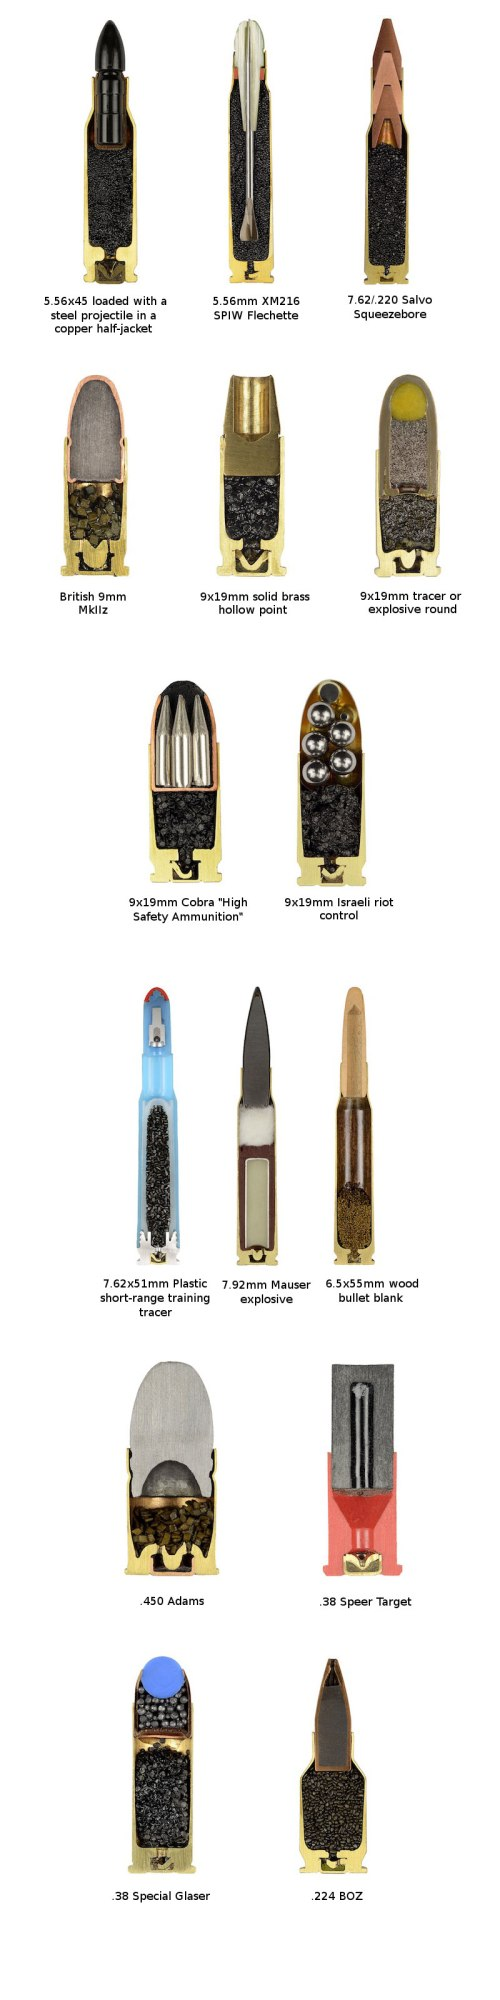 cross-sections-of-ammo-sabine-pearlman-7